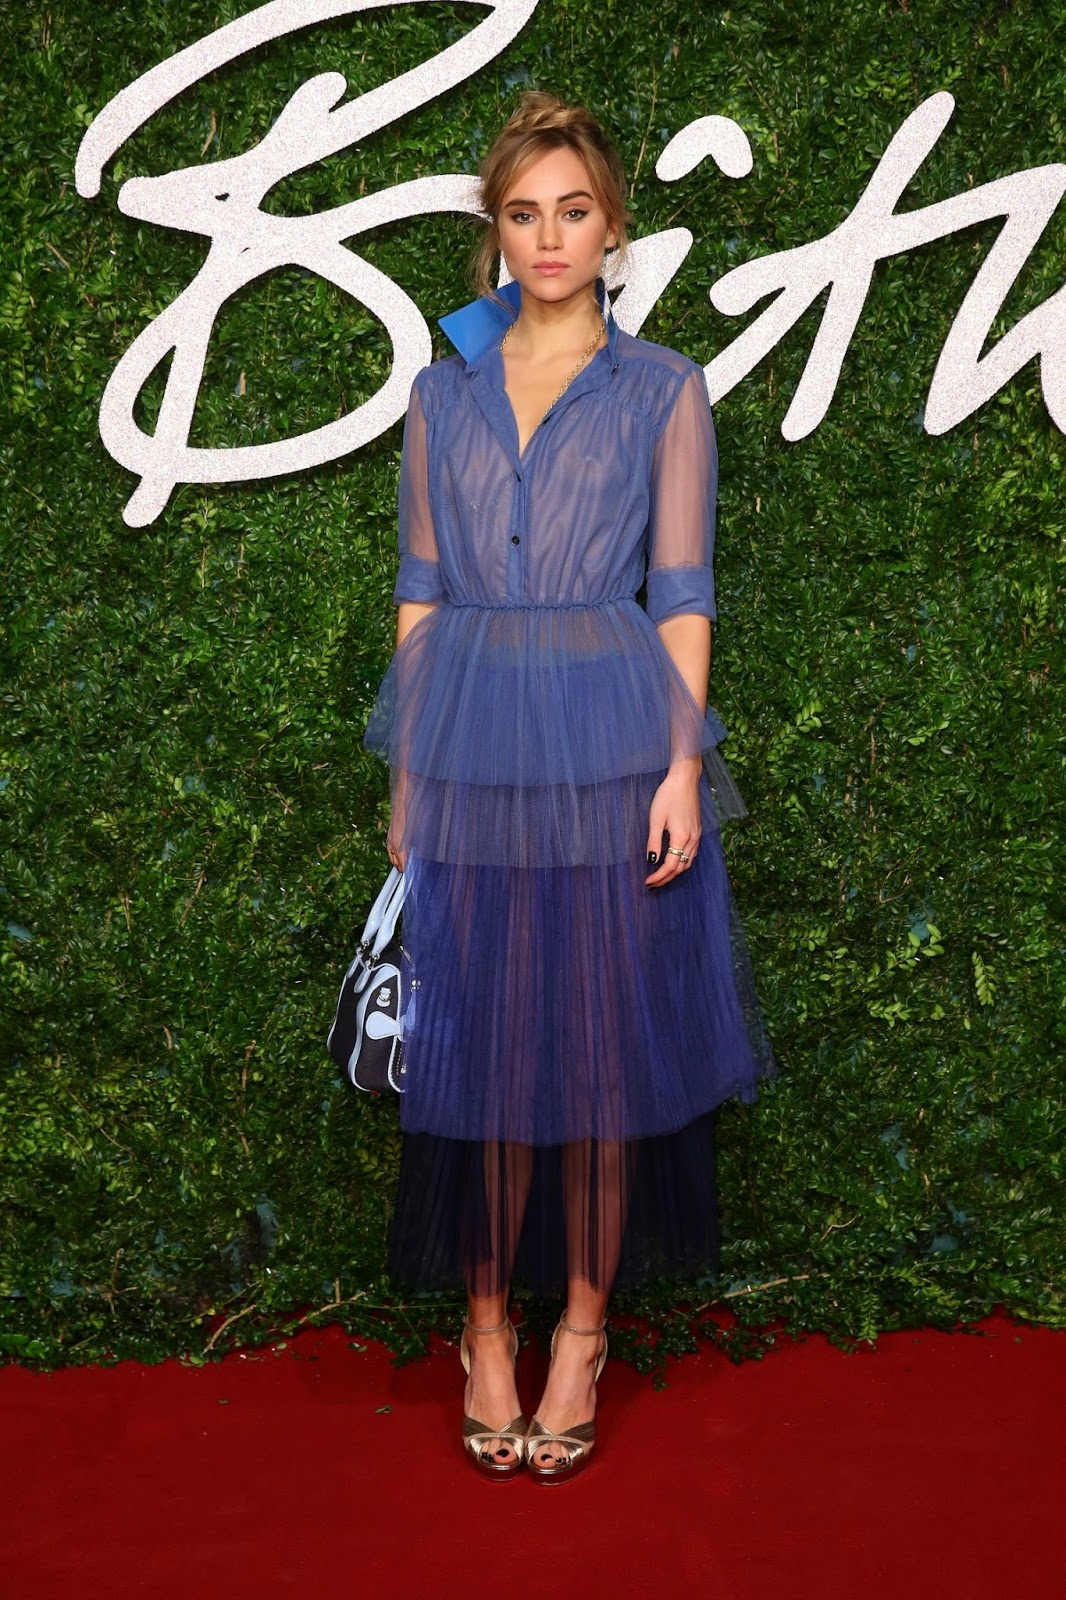 Suki Waterhouse in aqua gown at the 2014 British Fashion Awards